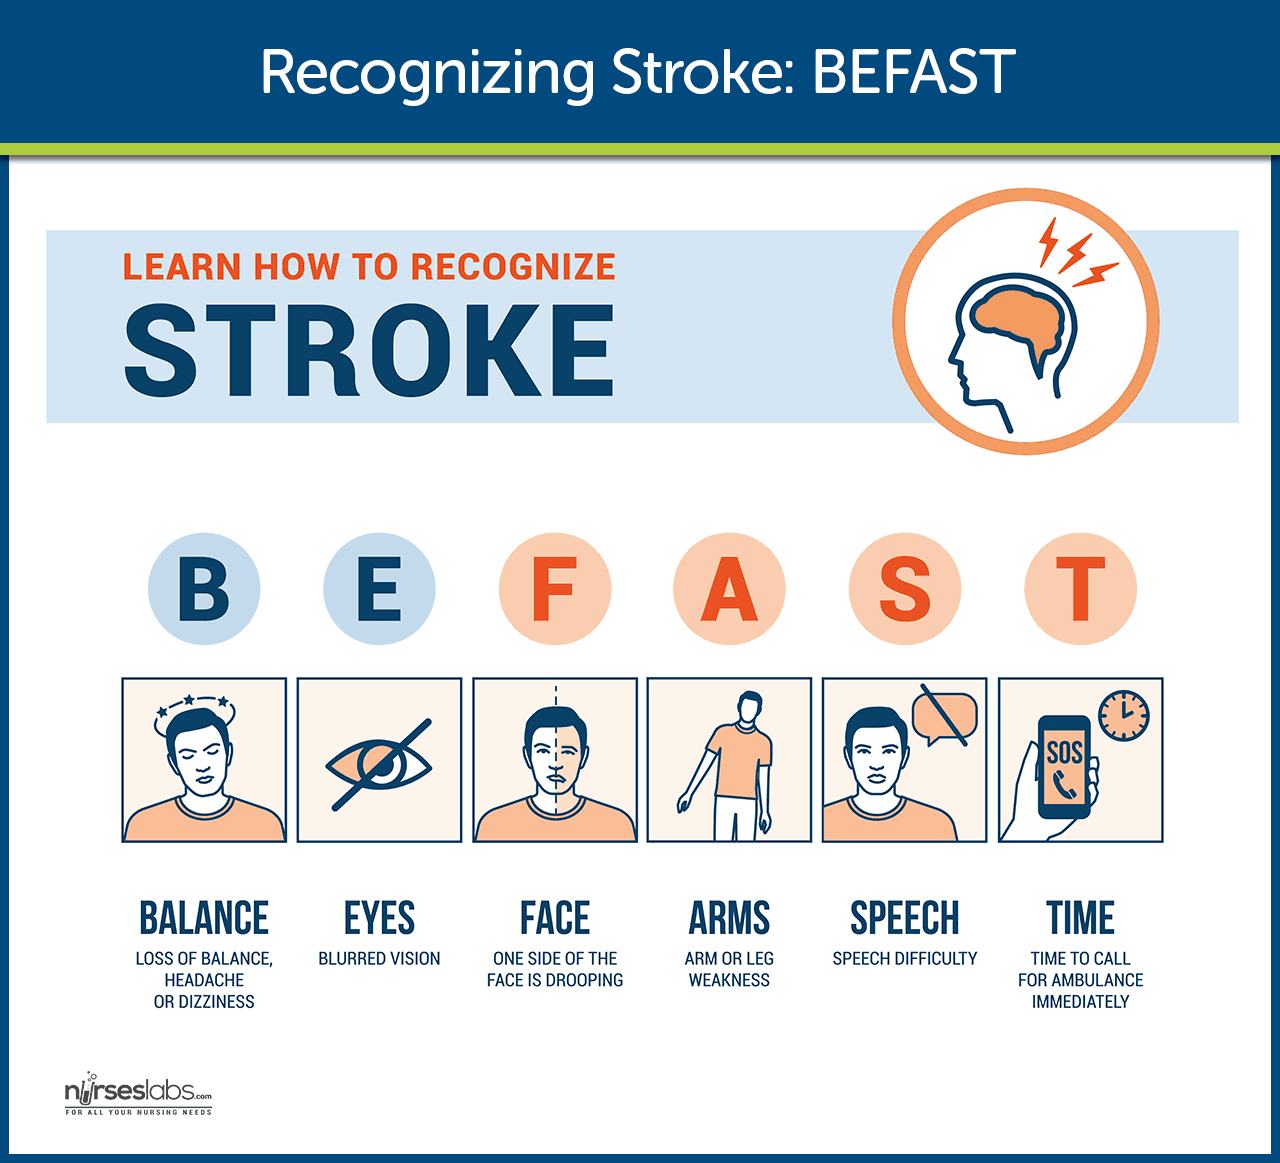 Recognizing Stroke